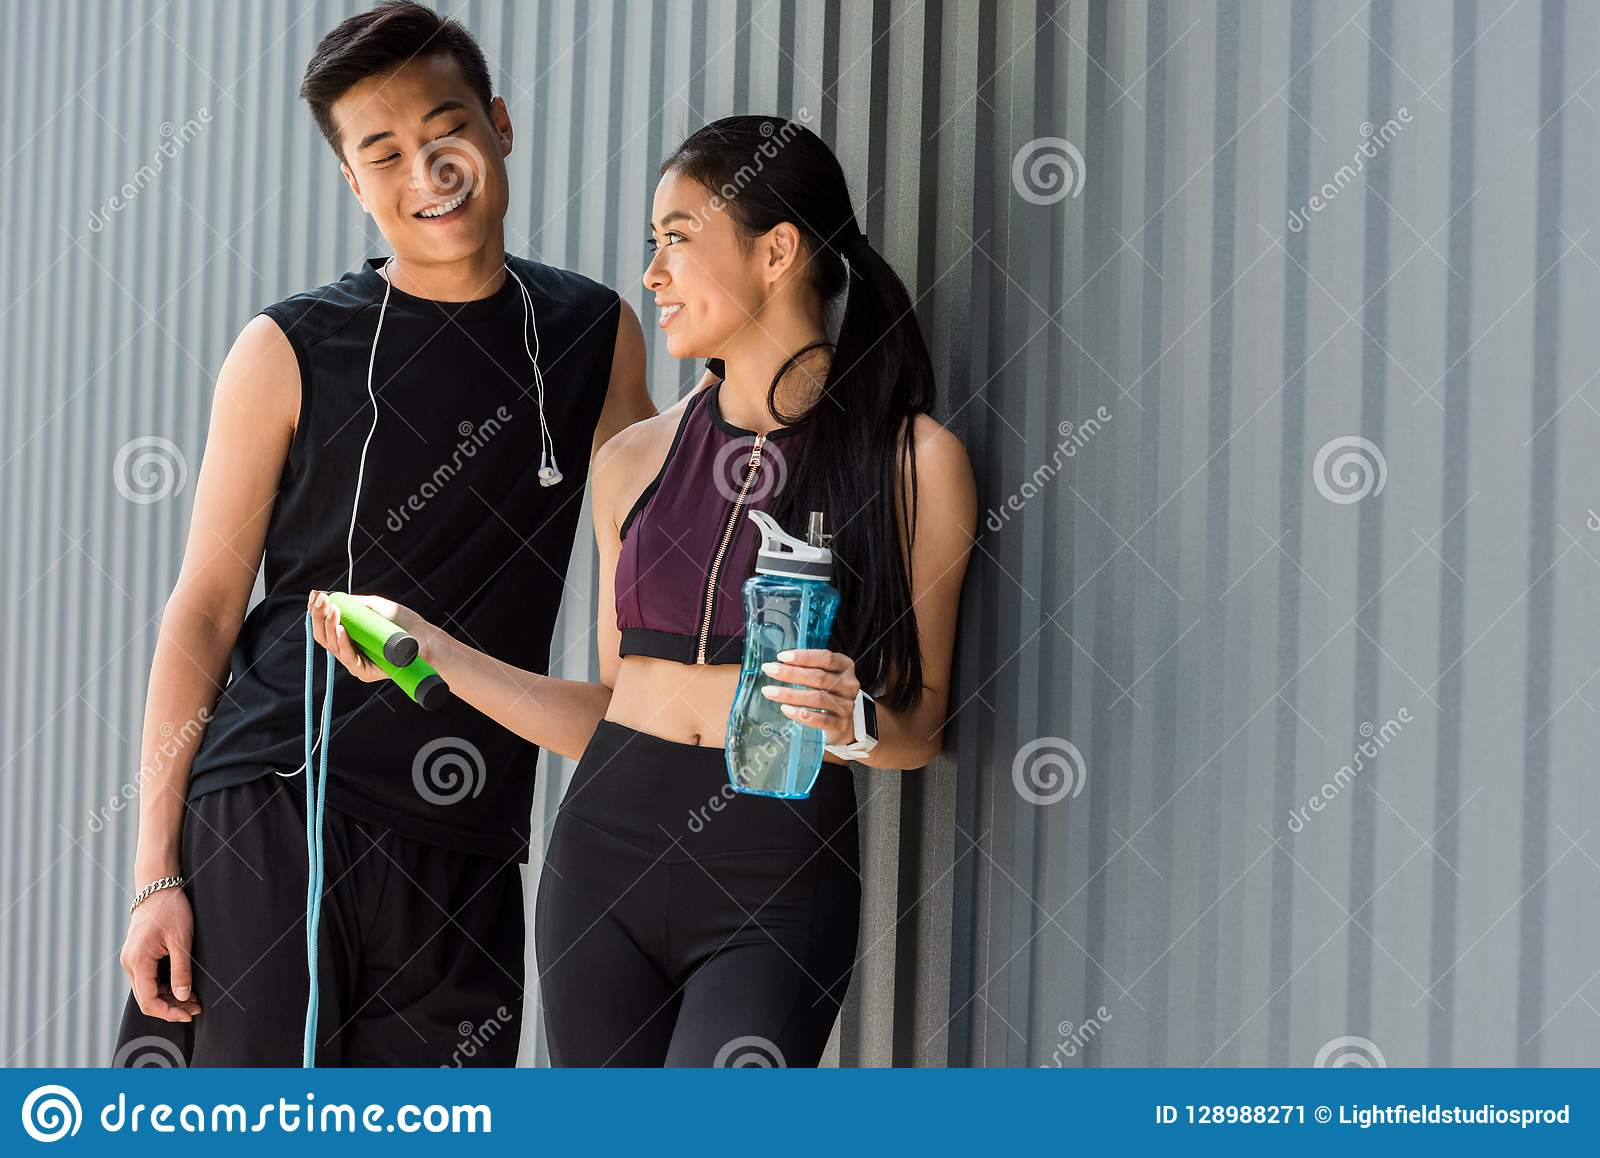 smiling asian sportswoman holding bottle of water and giving jump rope to young sportsman